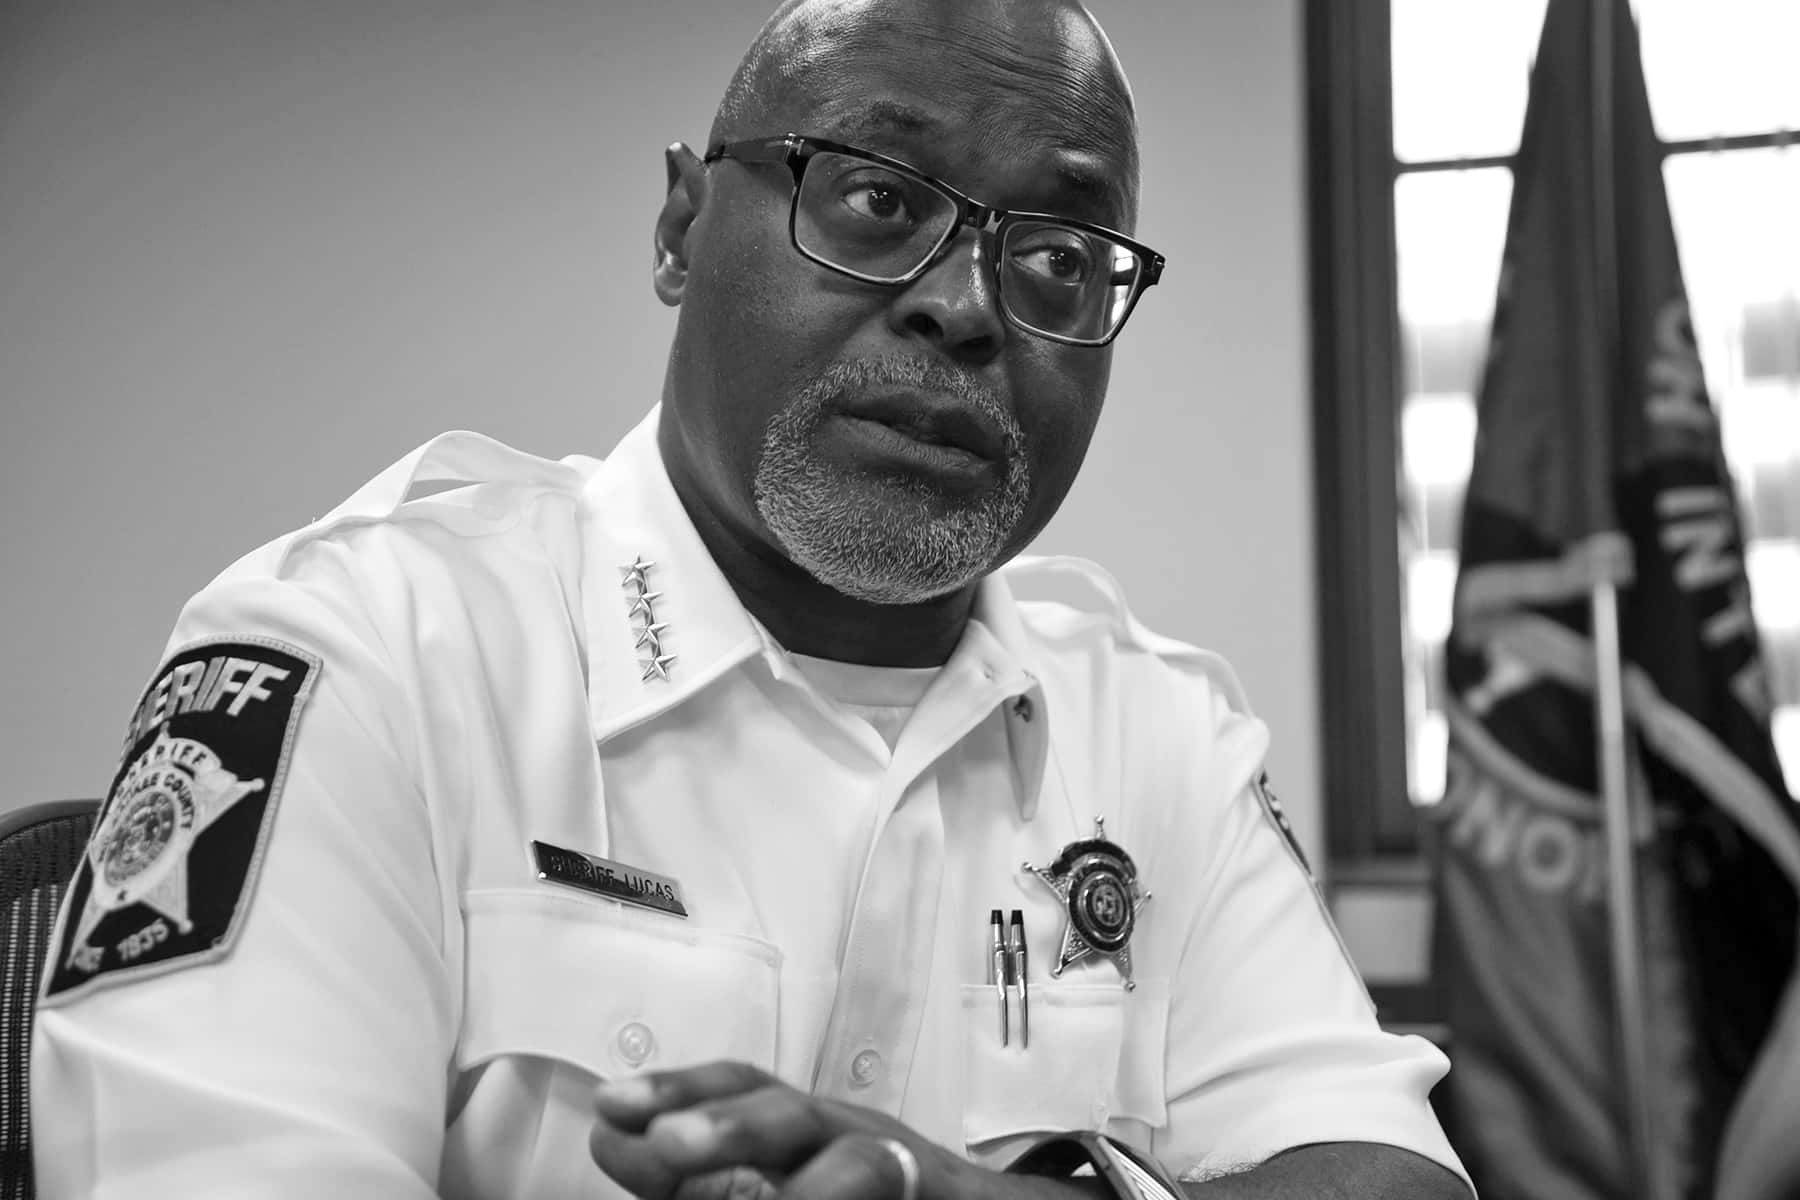 Earnell Lucas: A Day in Photos with the County Sheriff | The